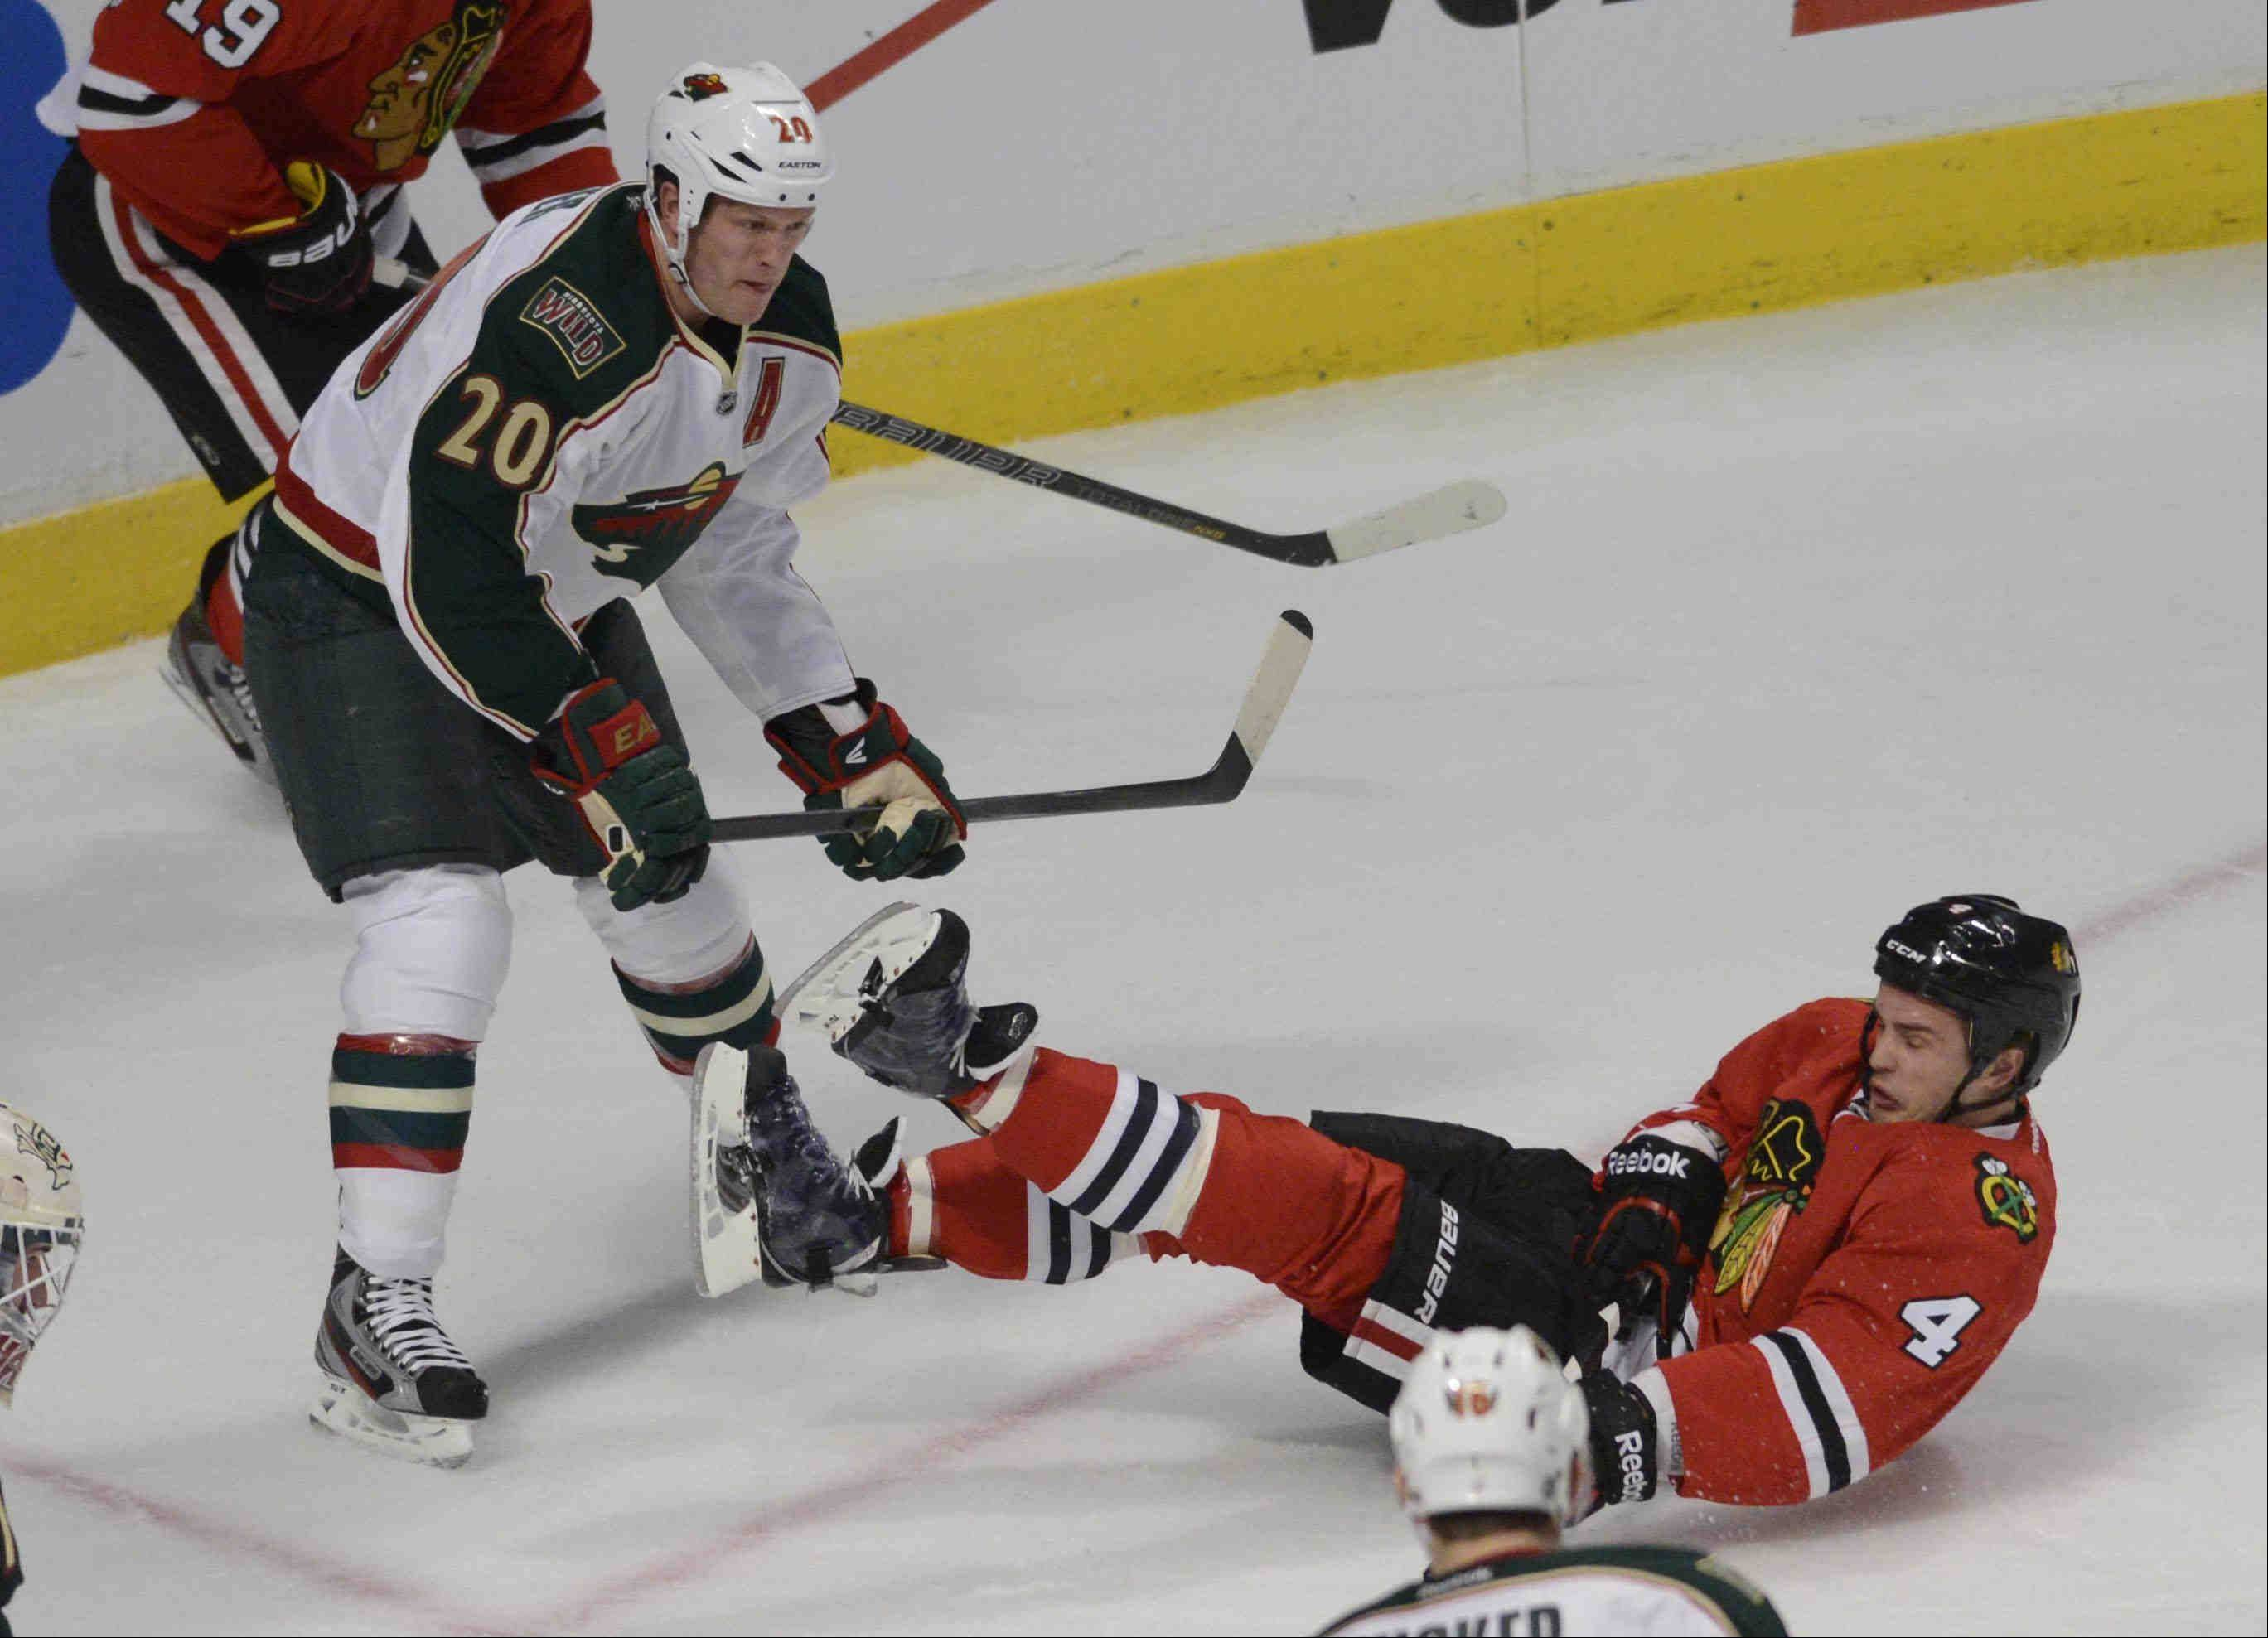 Although he got knocked off his skates here, Blackhawks defenseman Niklas Hjalmarsson and Duncan Keith had the upper hand against the Minnesota Wild's top line in Game 1, holding them scoreless.